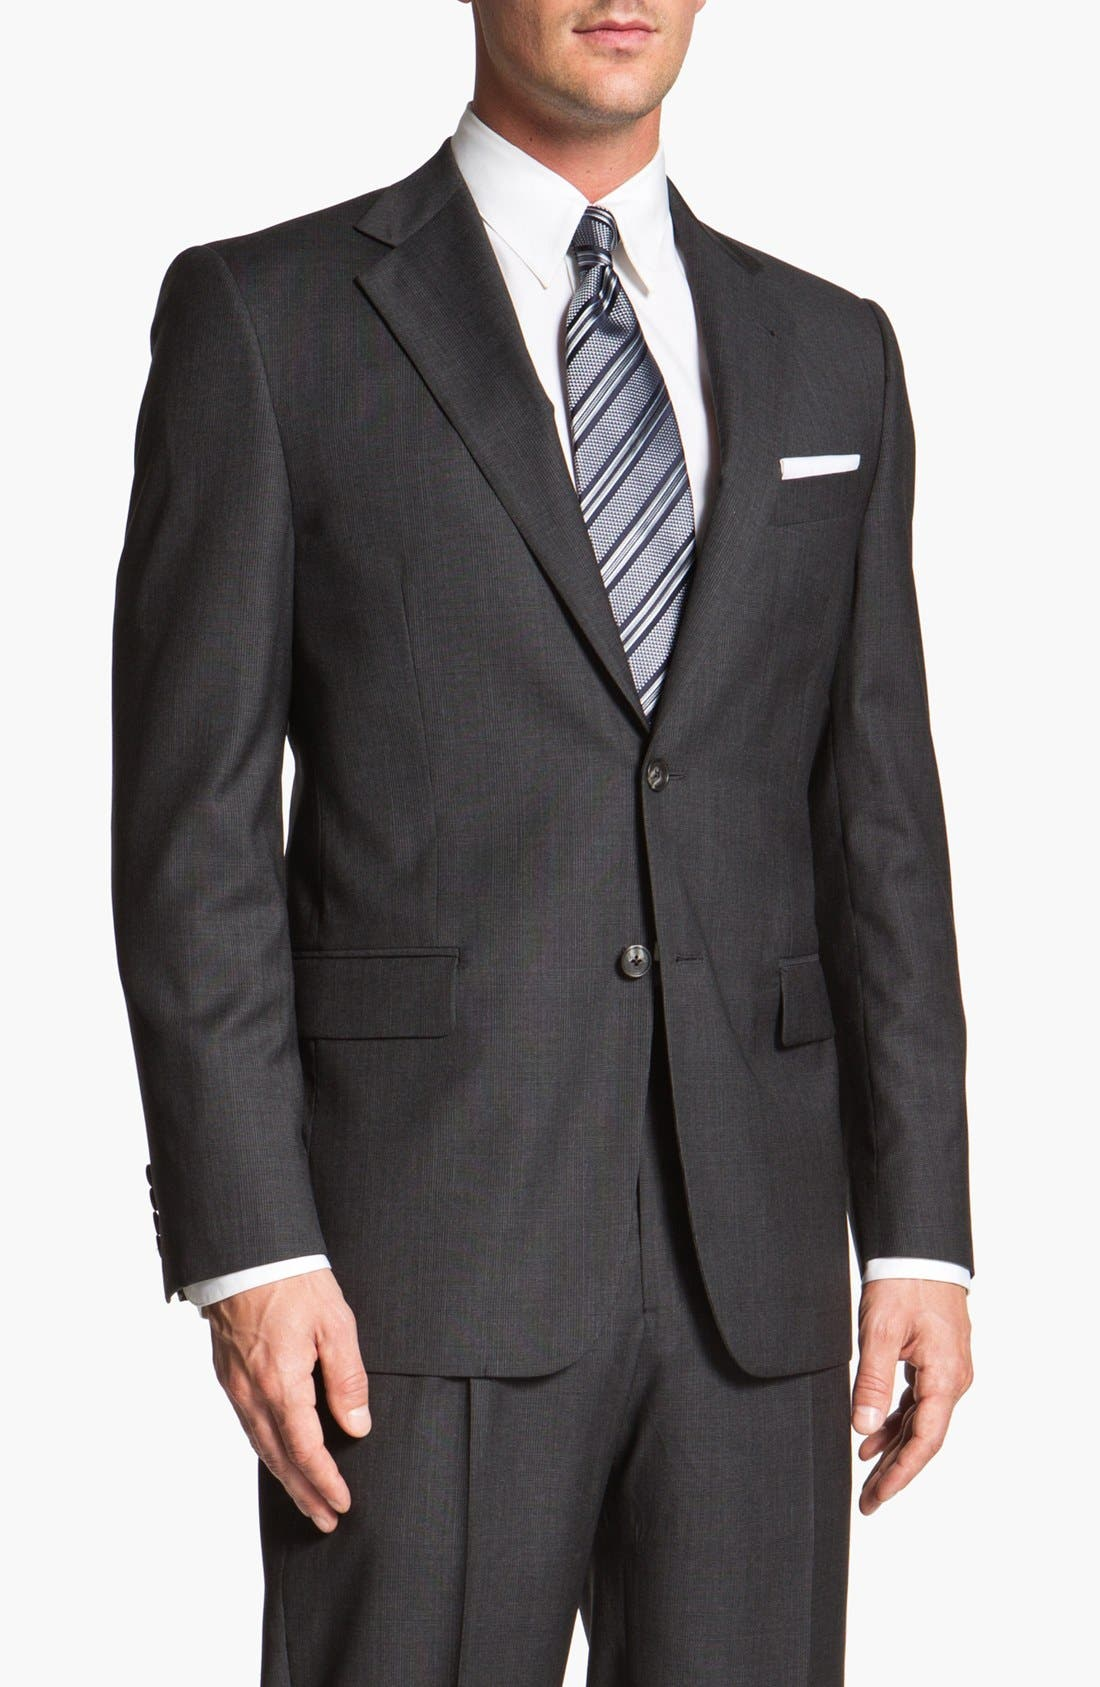 Main Image - Joseph Abboud 'Signature Silver' Plaid Wool Suit (Online Only)